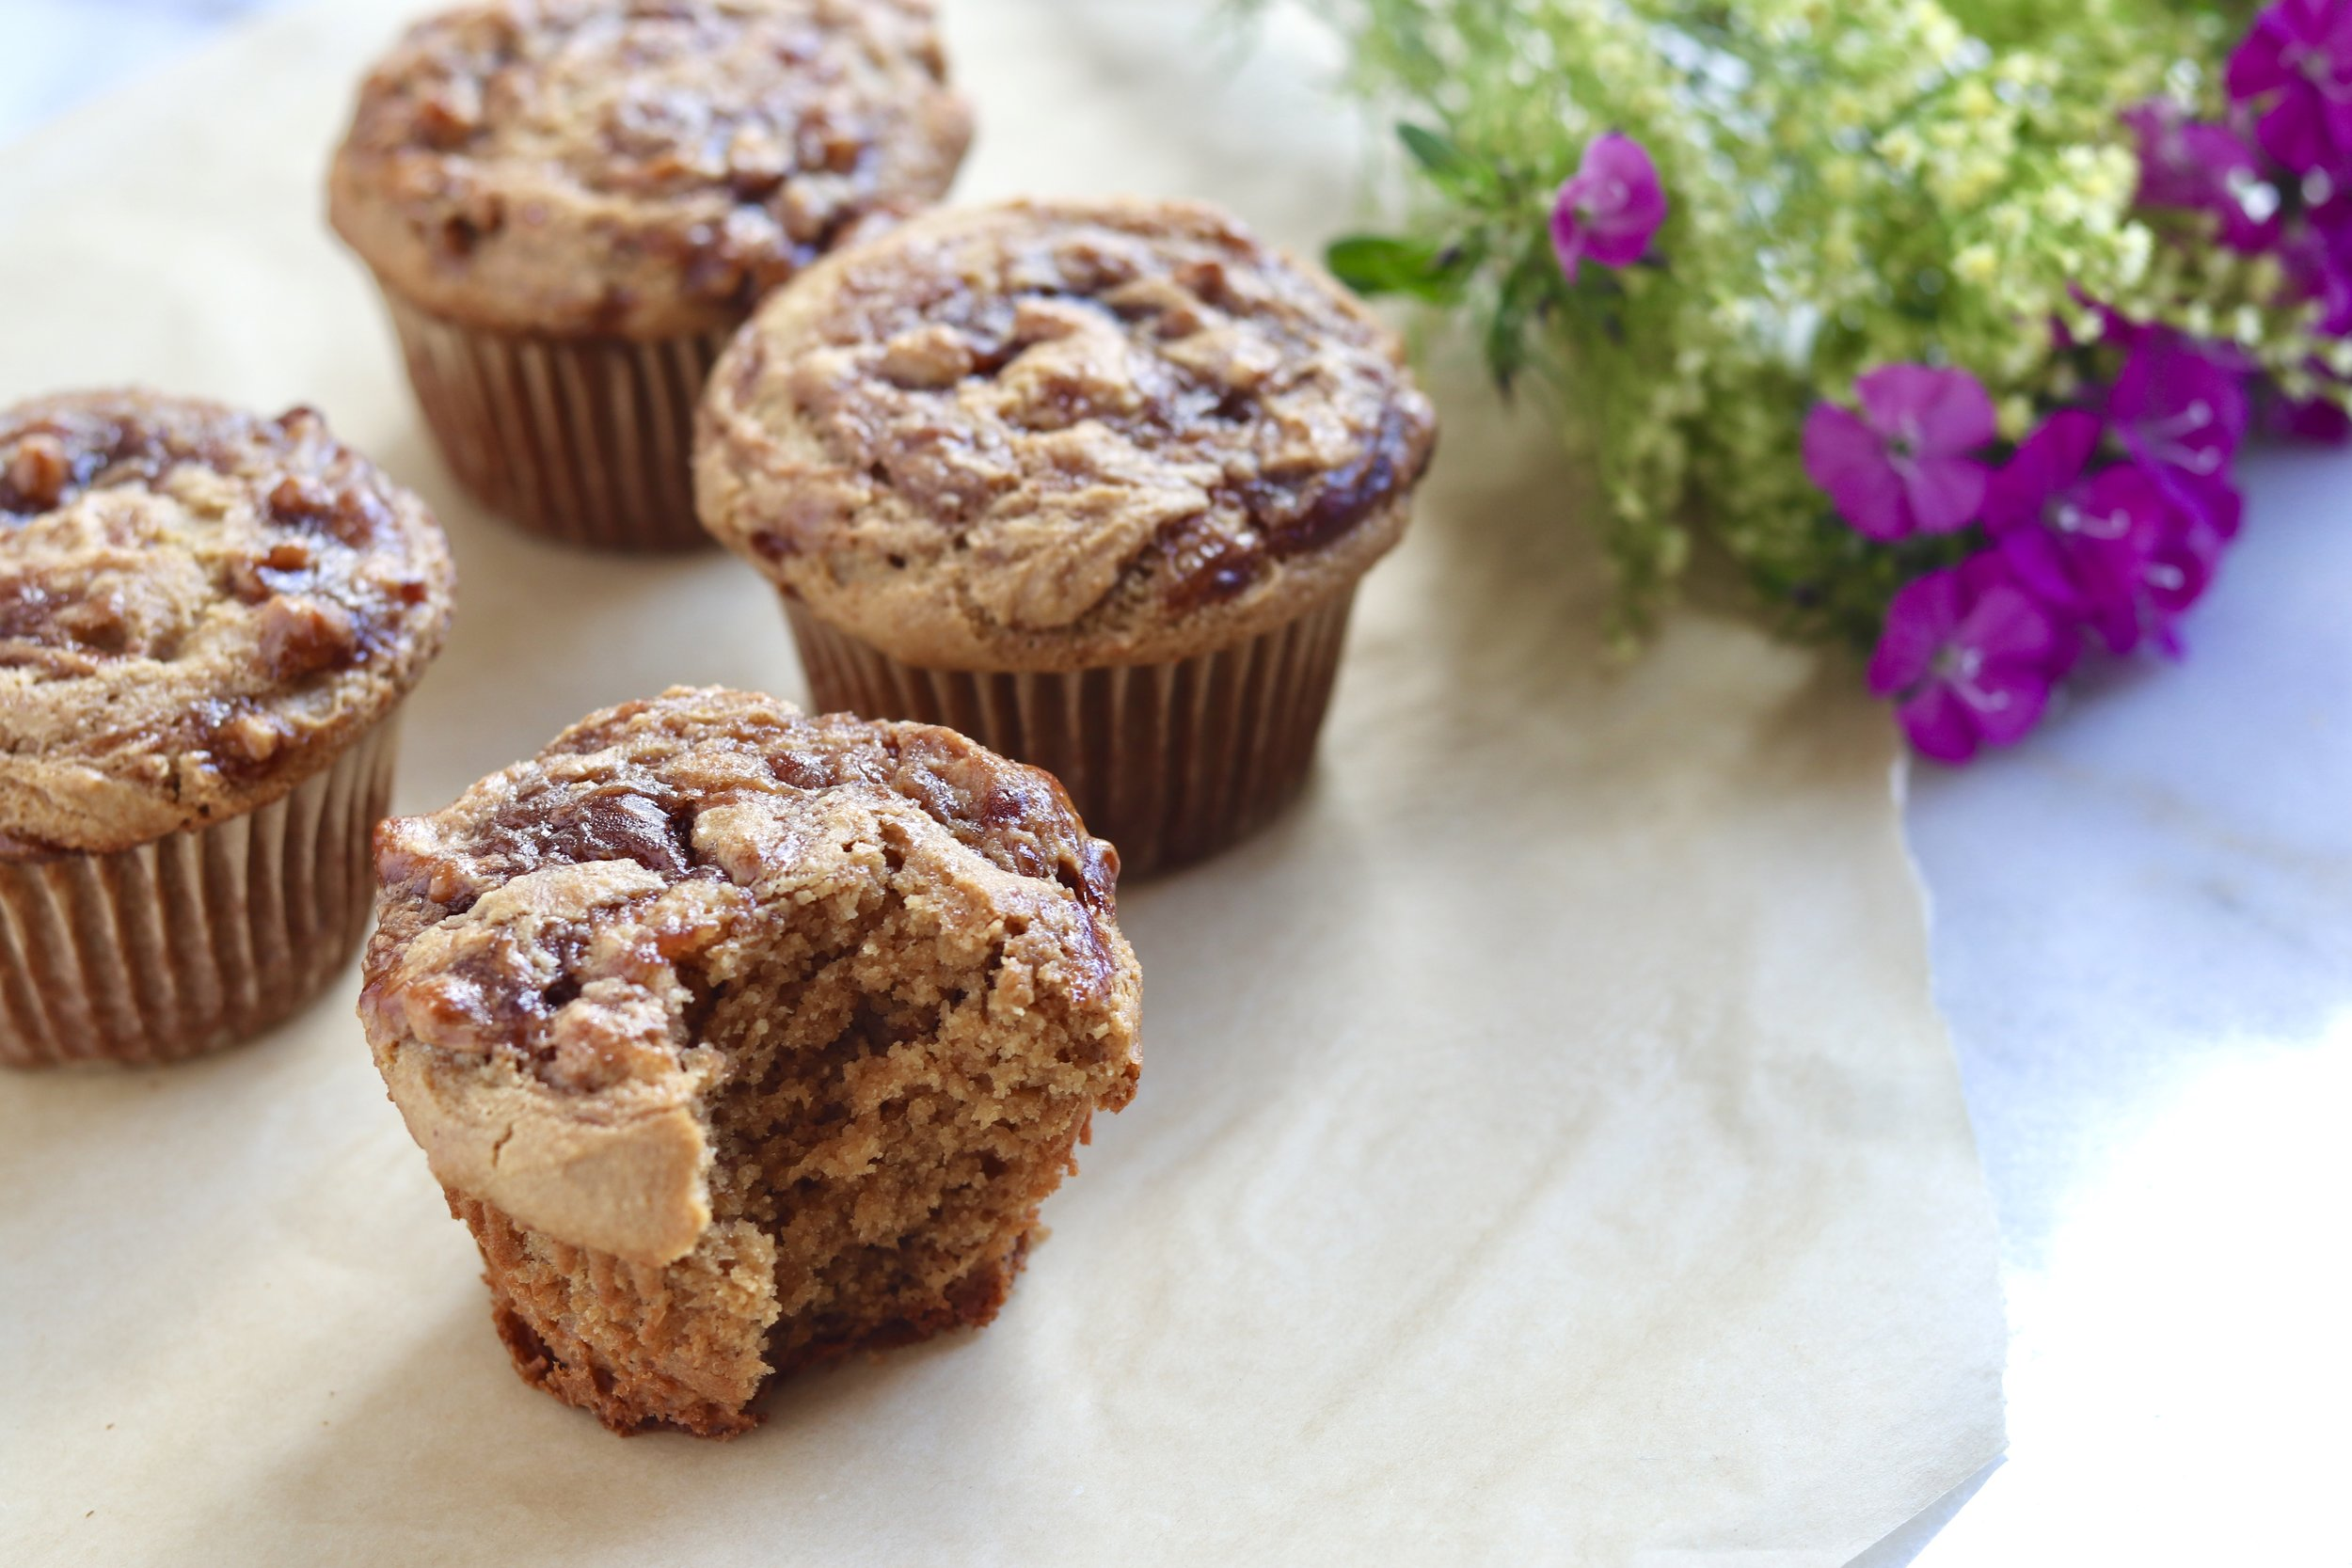 Grain-Free Peanut Butter and Jelly Muffins by I'd Eat That Food